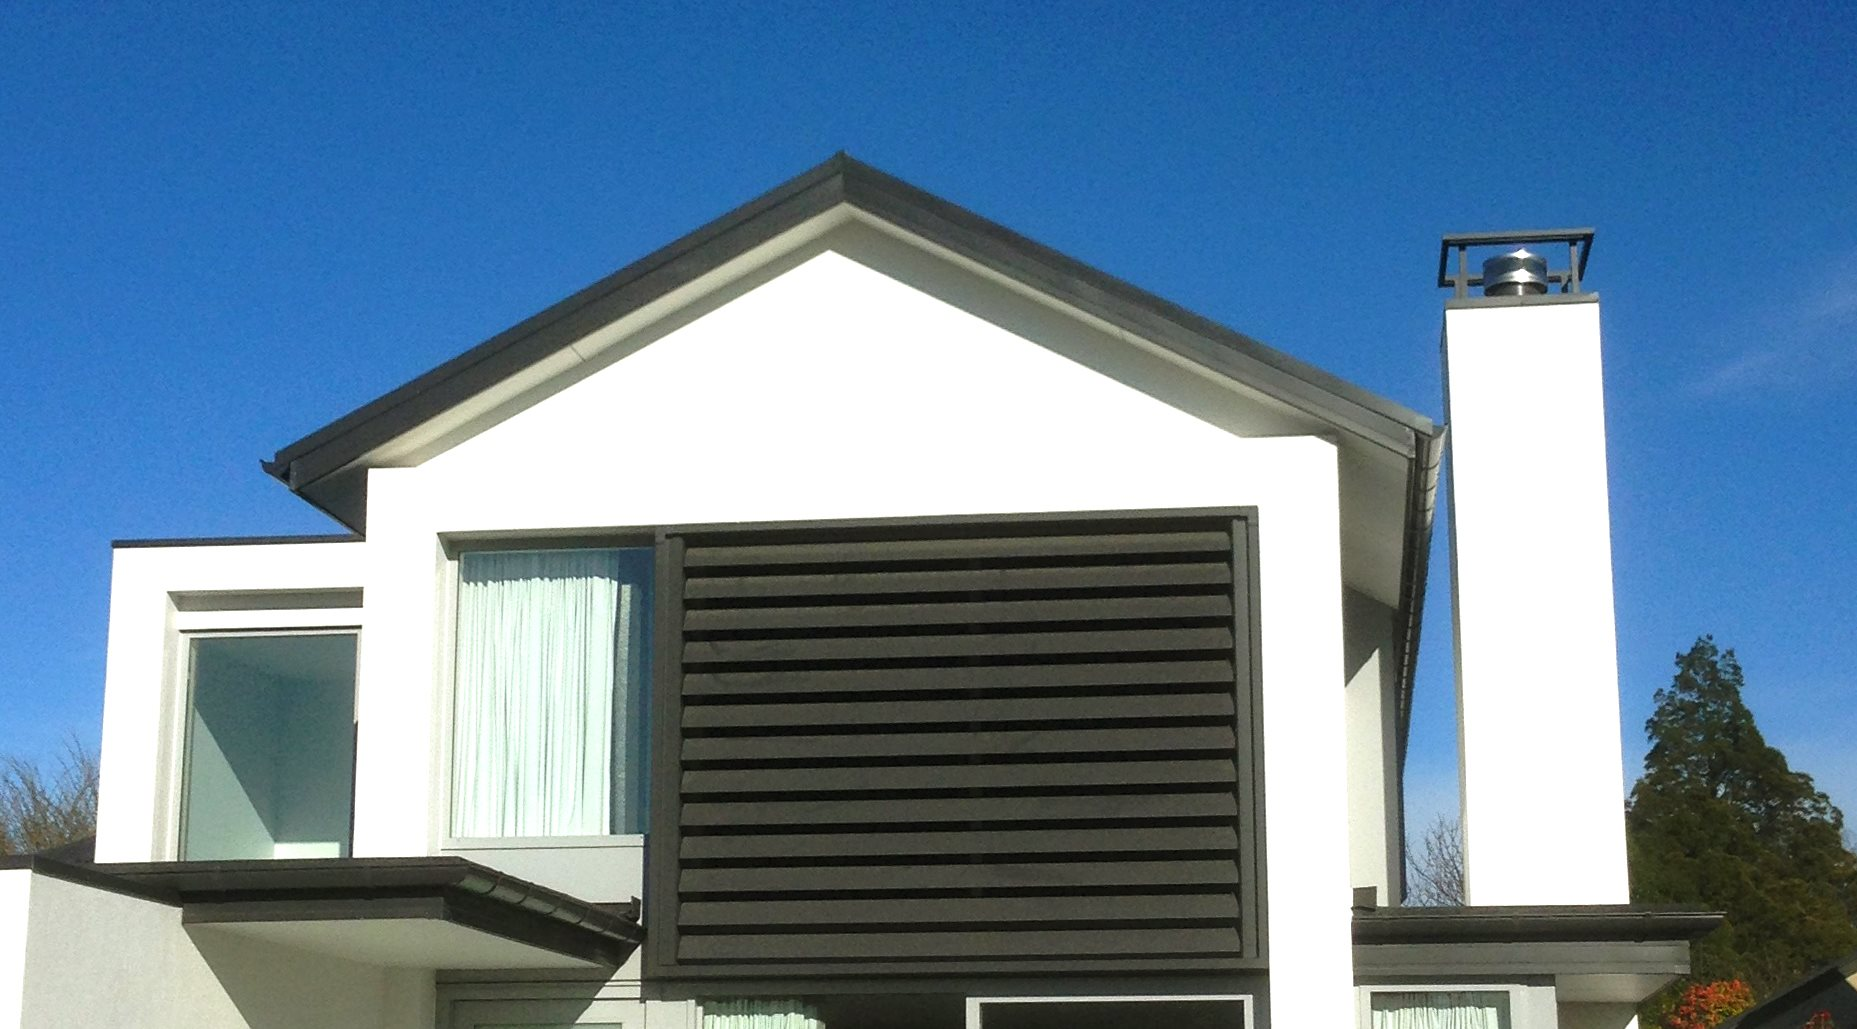 Closed Vertical louver covering window on the side of a house